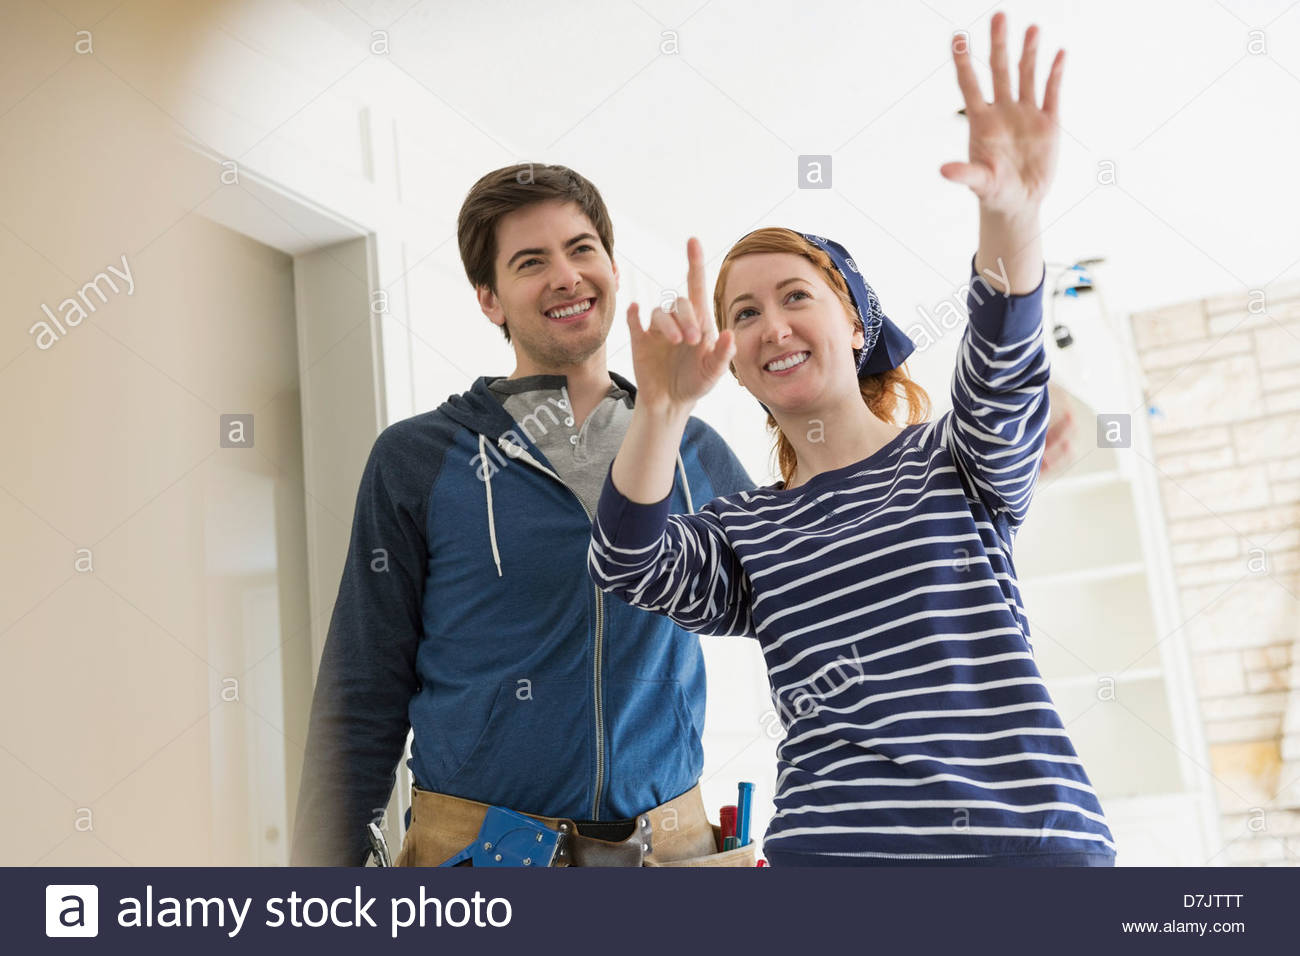 Smiling young couple discussing renovations at home - Stock Image